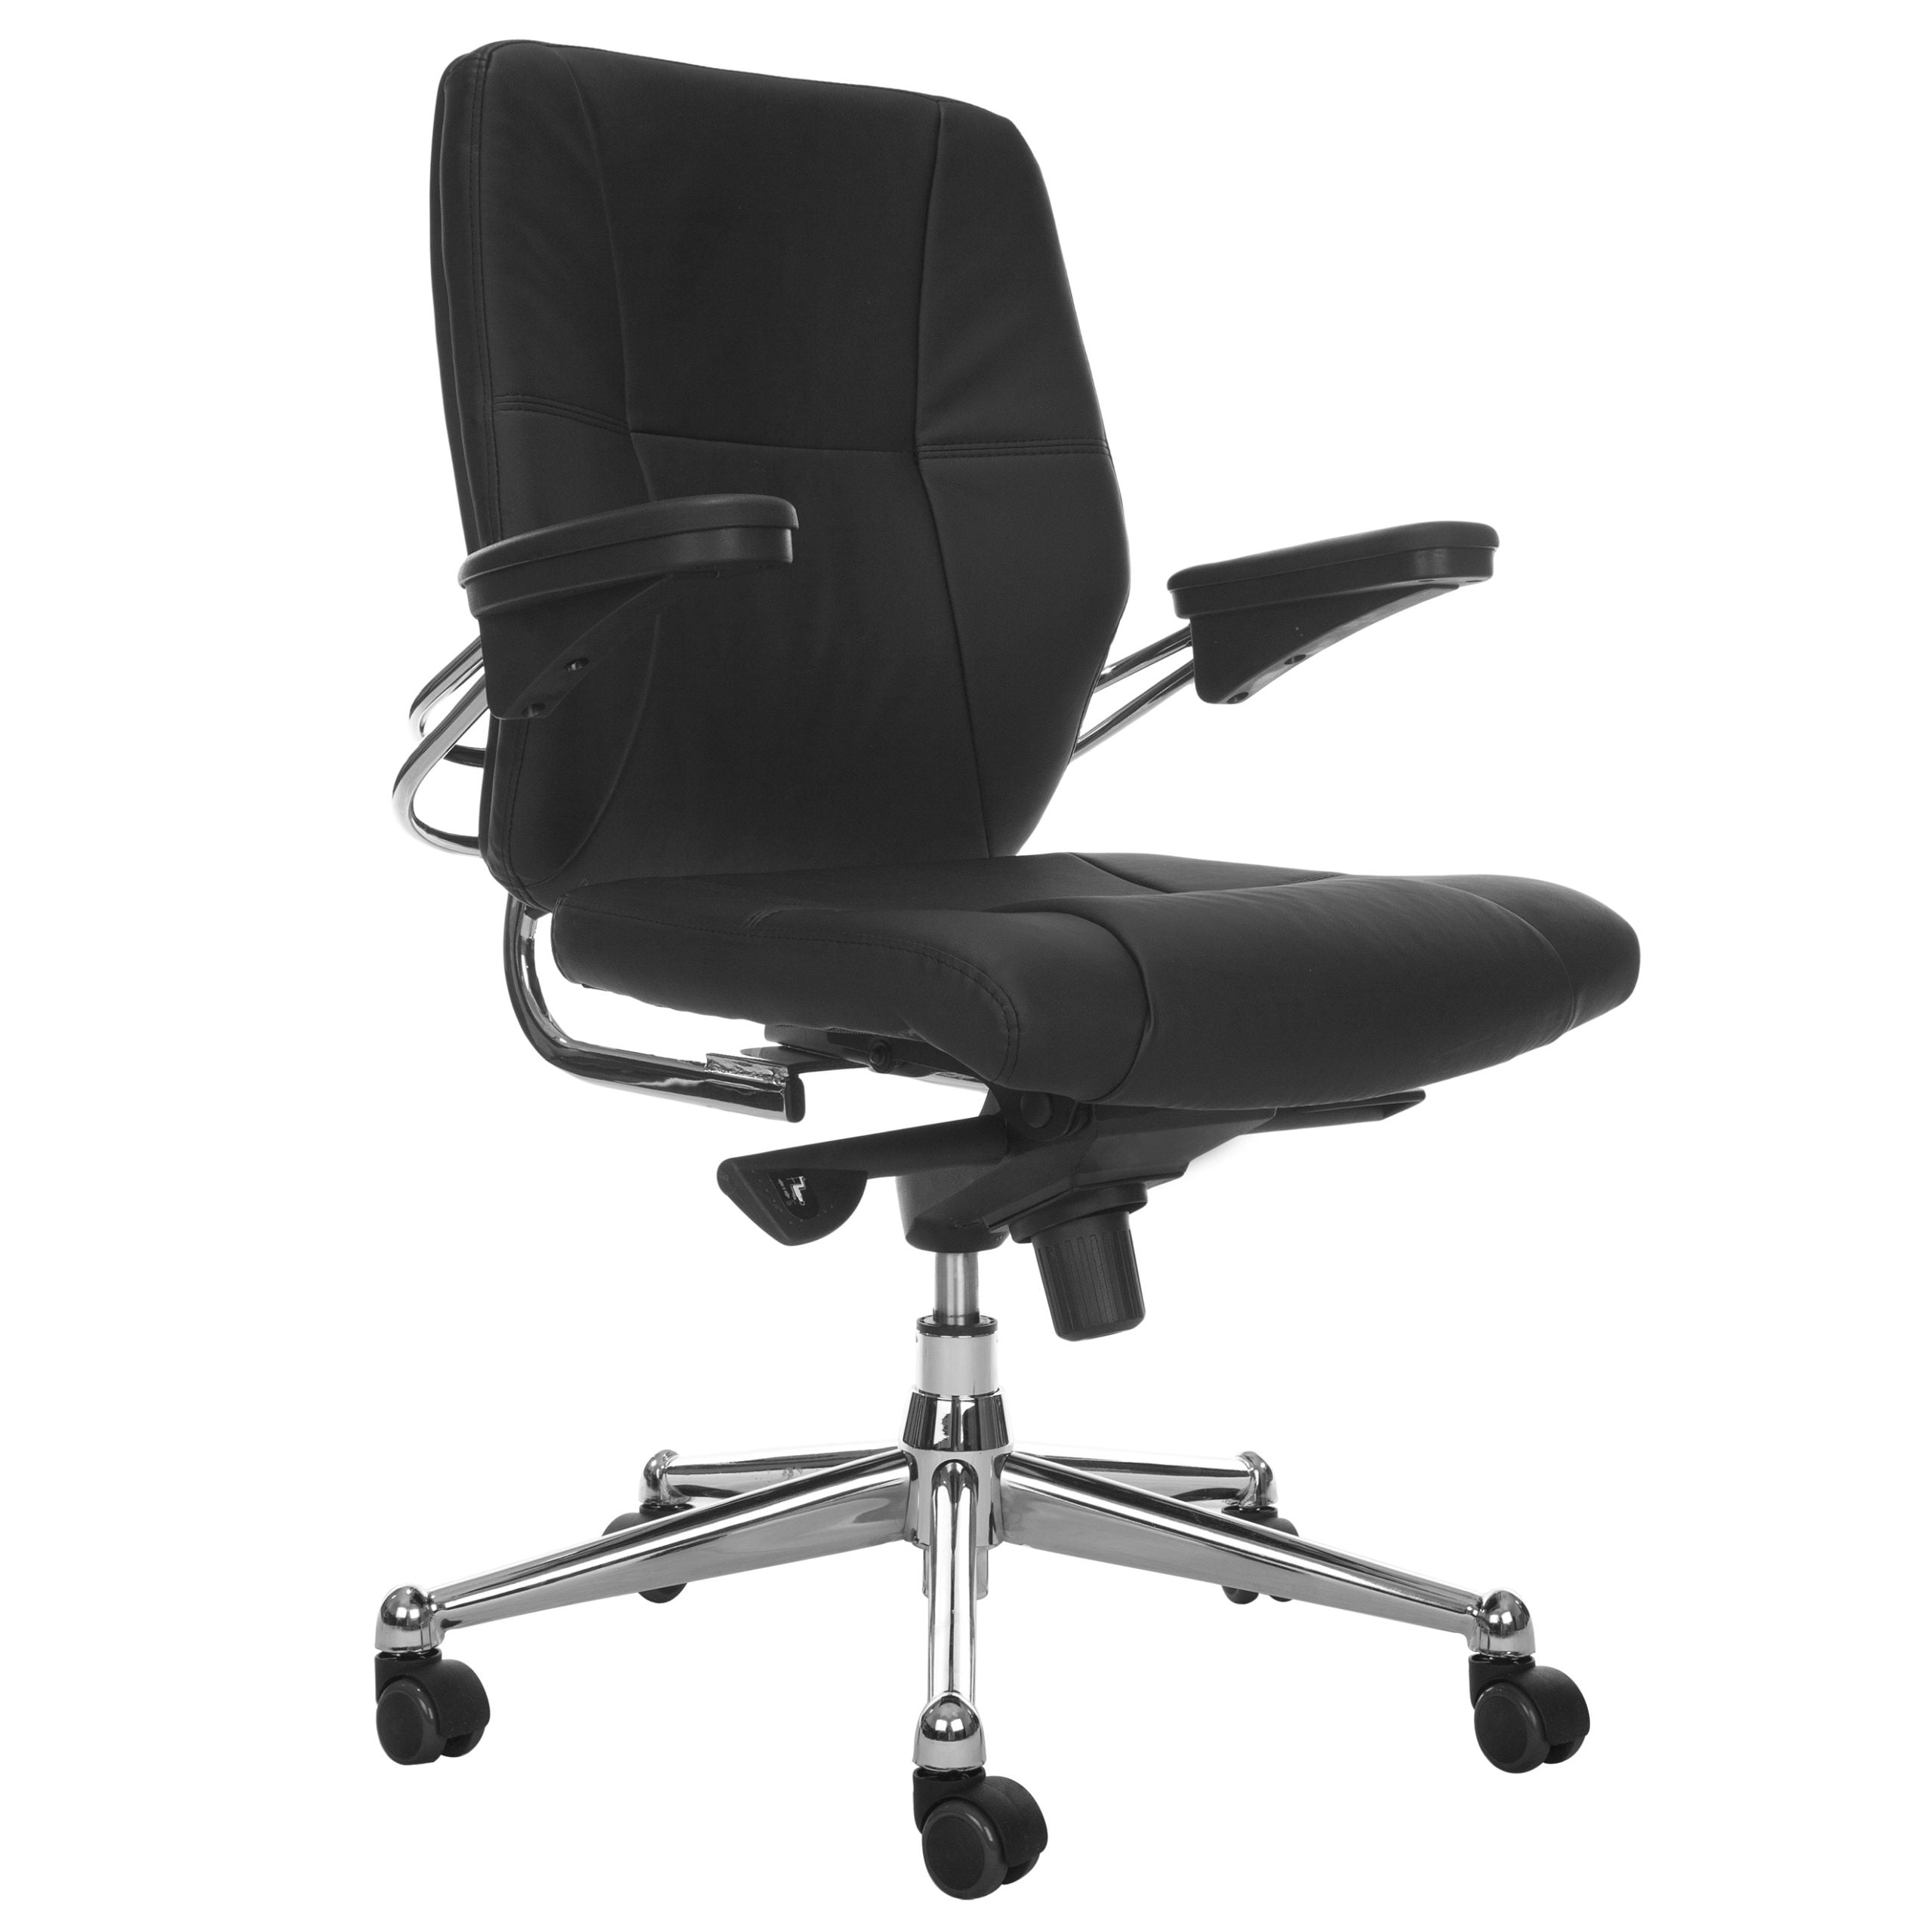 Trent Task Chair - Black